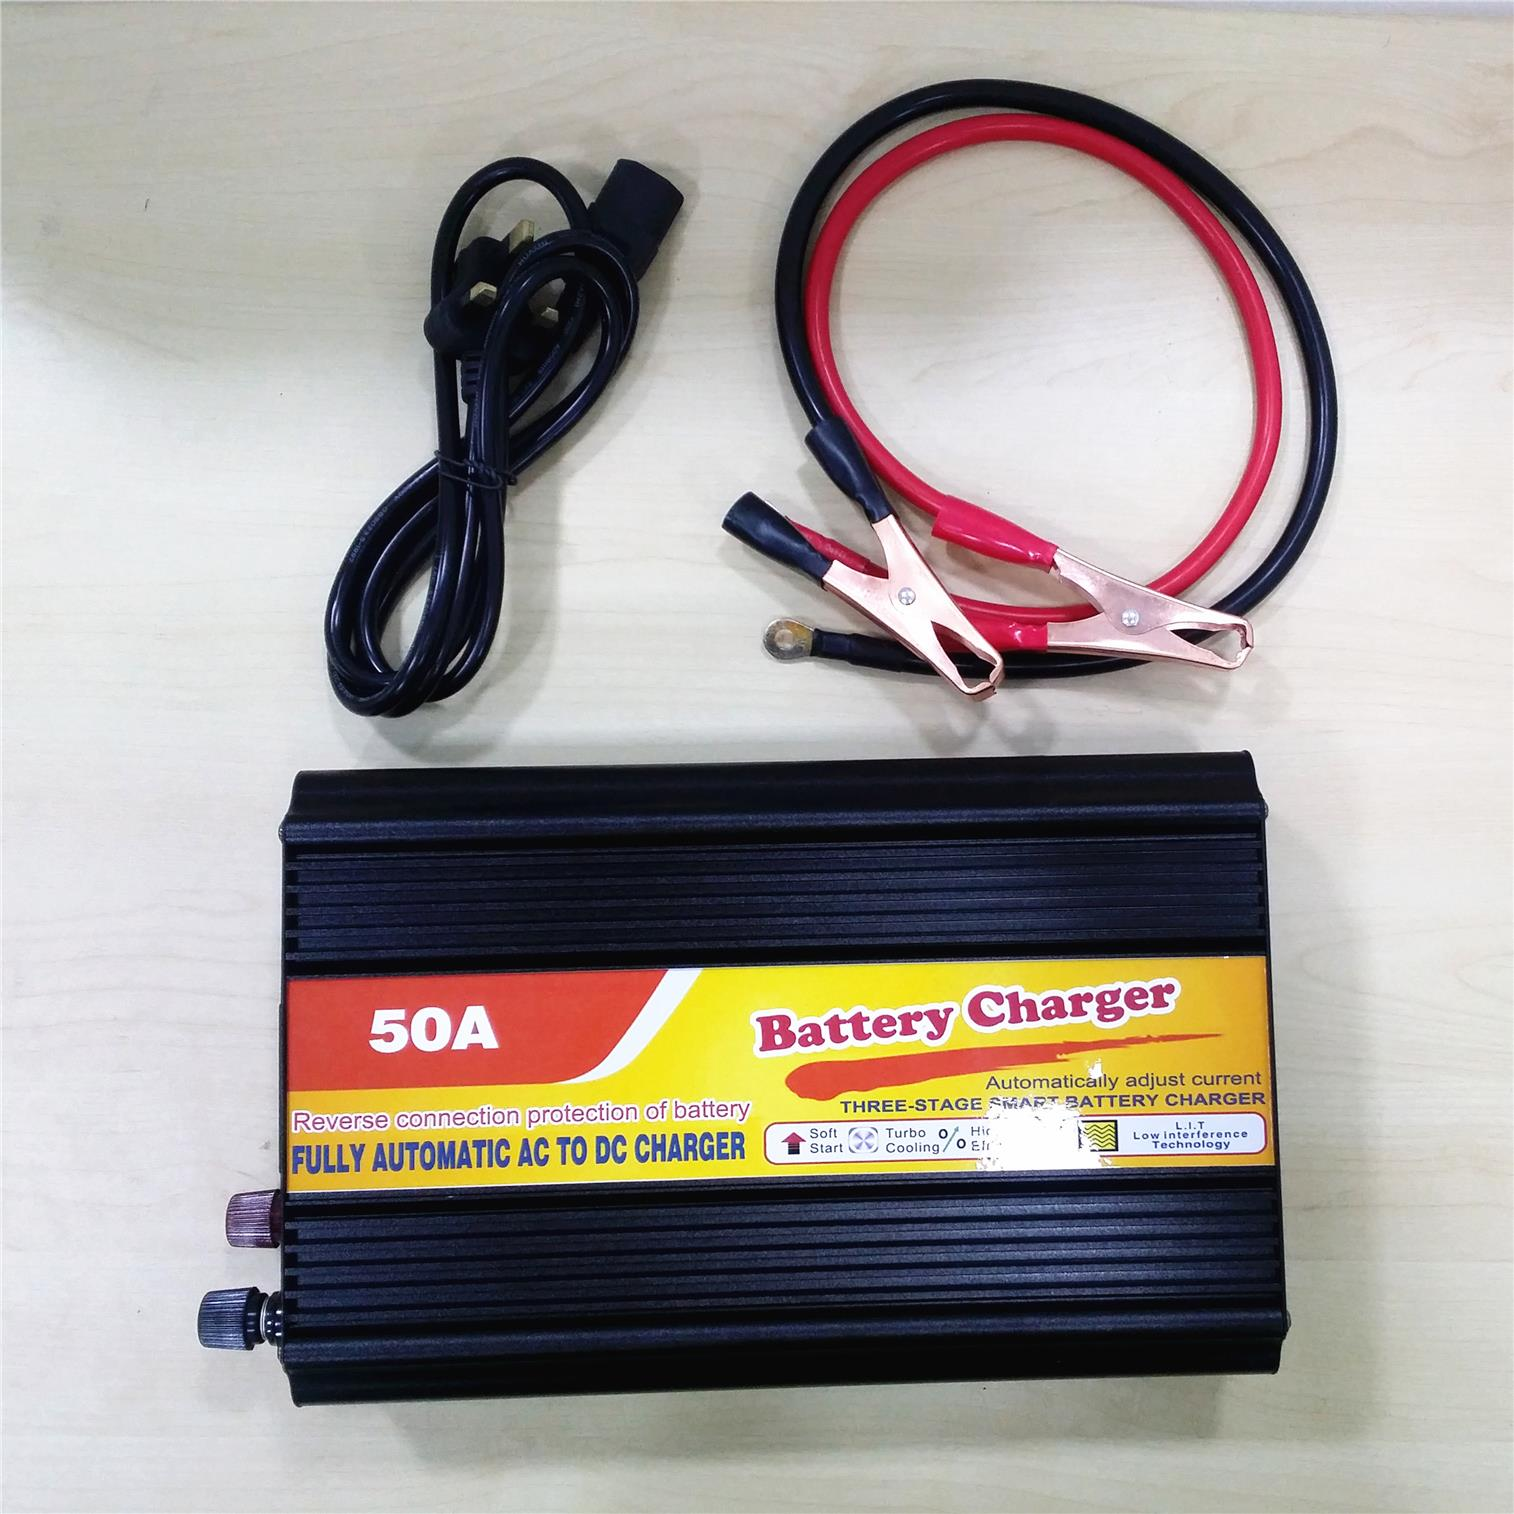 Battery Charger 50a 12v For Ups So End 10 19 2019 1215 Pm Solar Based Multipurpose Circuit Lorry Boat 150ah To 500a